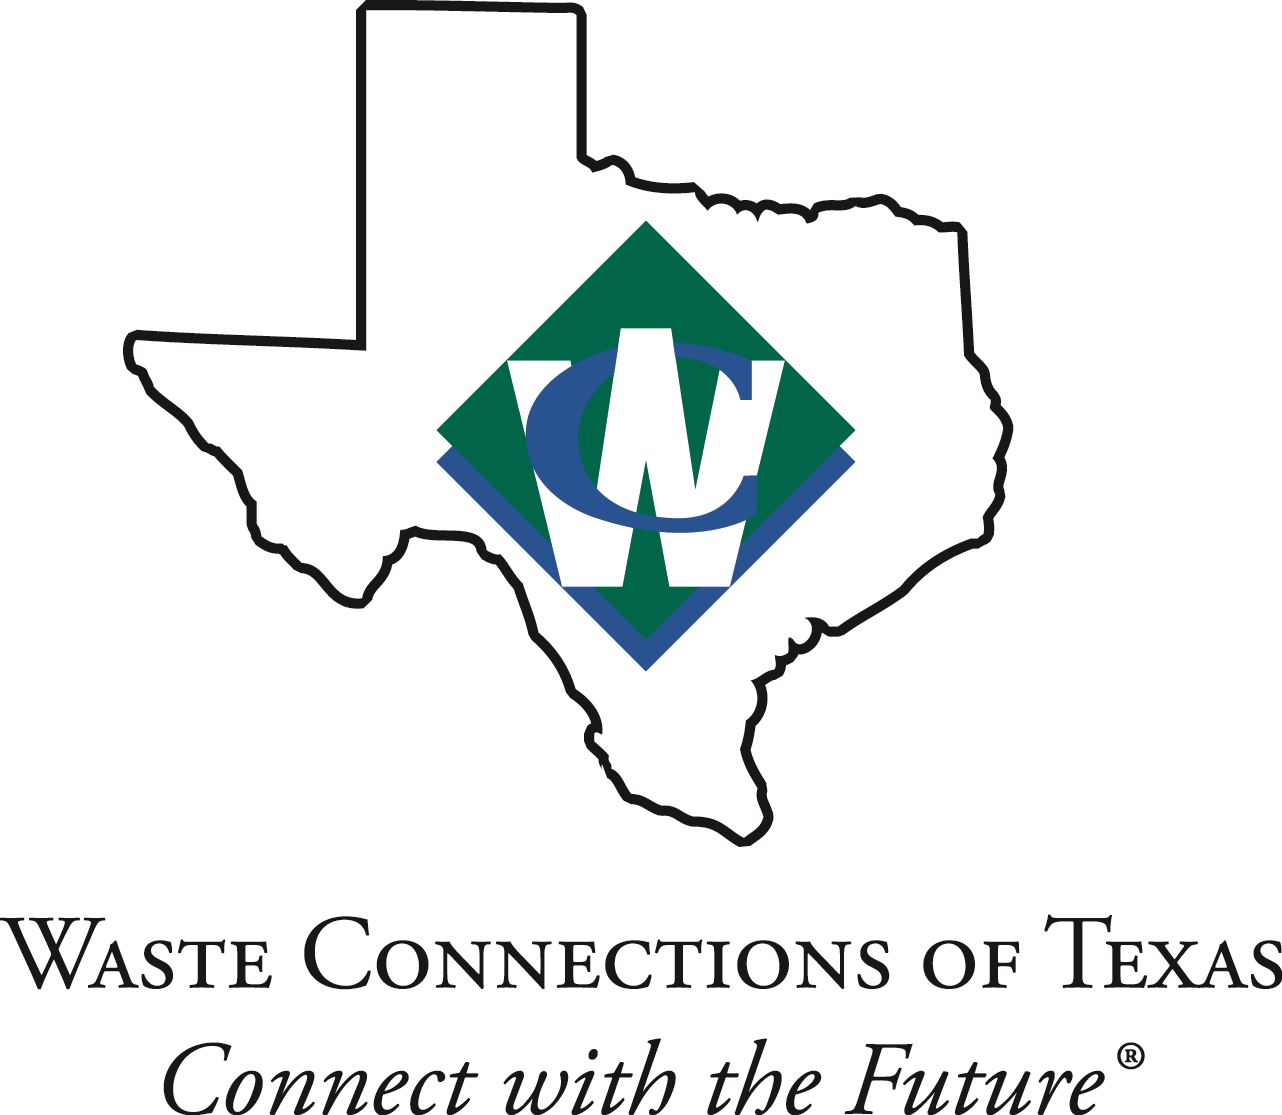 WC TX with connect